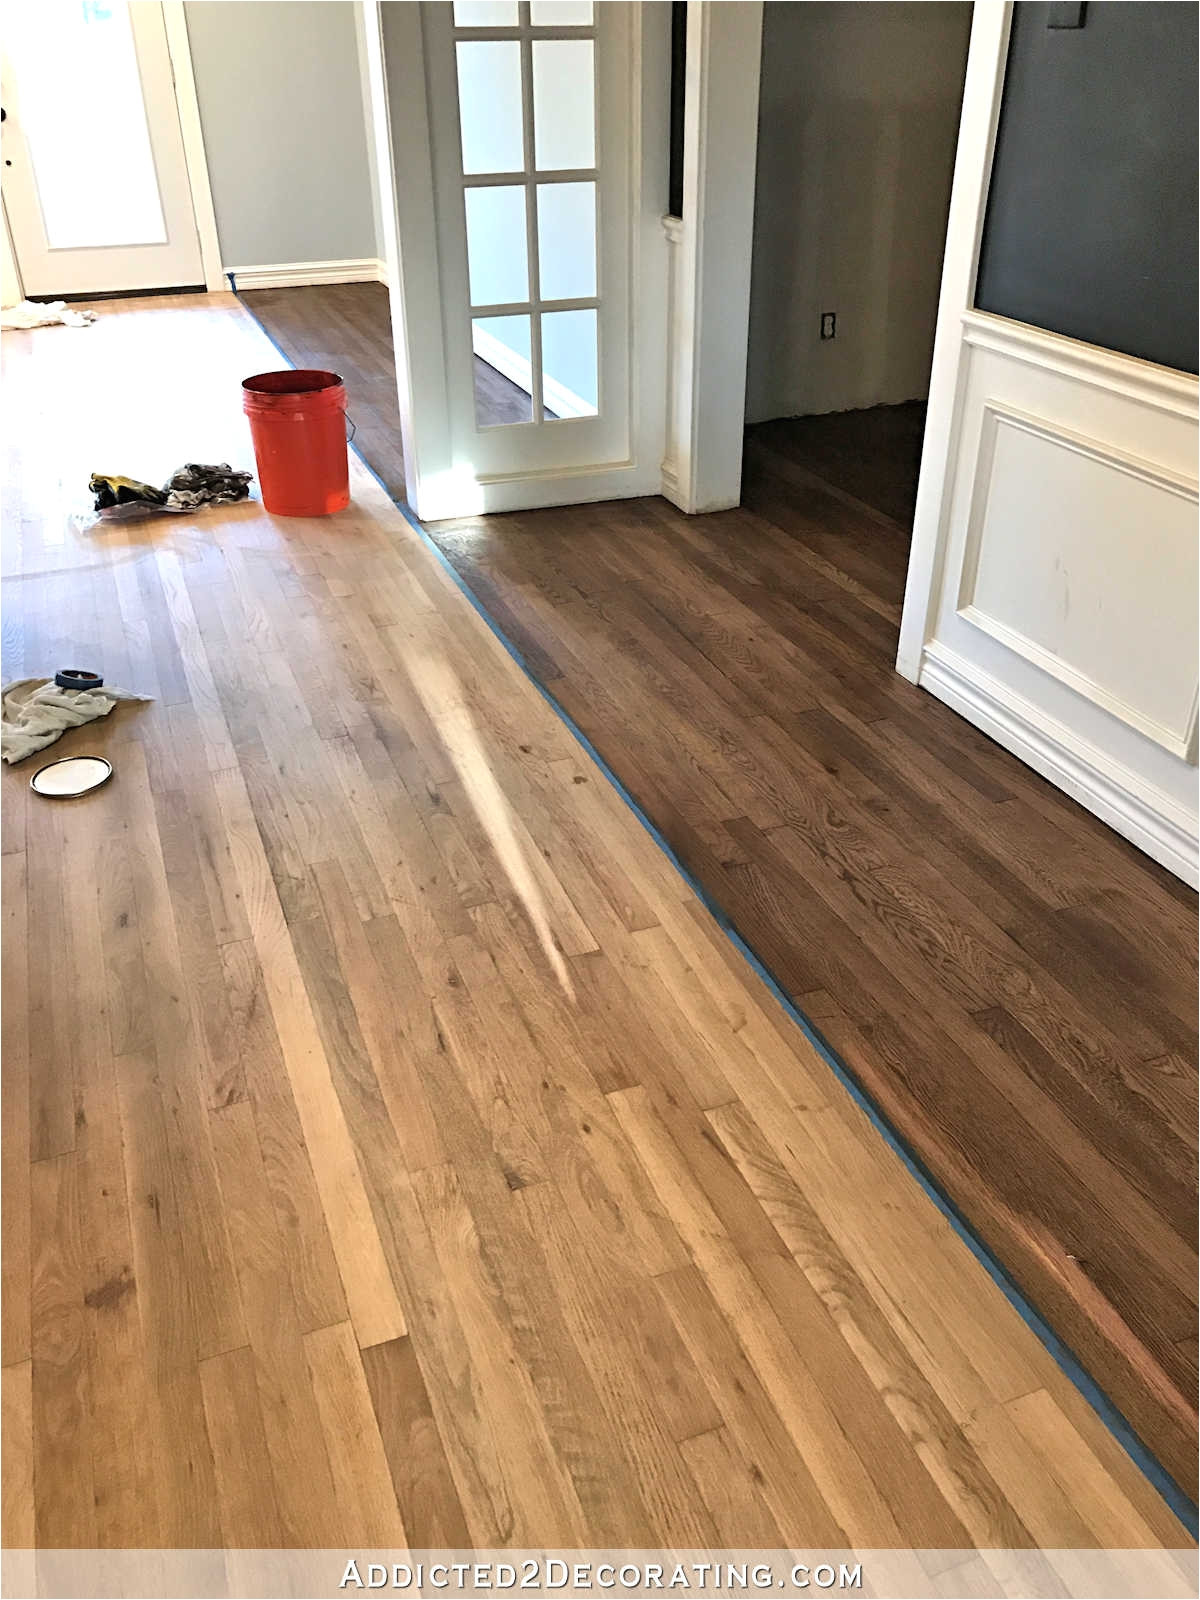 oak hardwood flooring of best way to deep clean hardwood floors bradshomefurnishings for adventures in staining my red oak hardwood floors products process